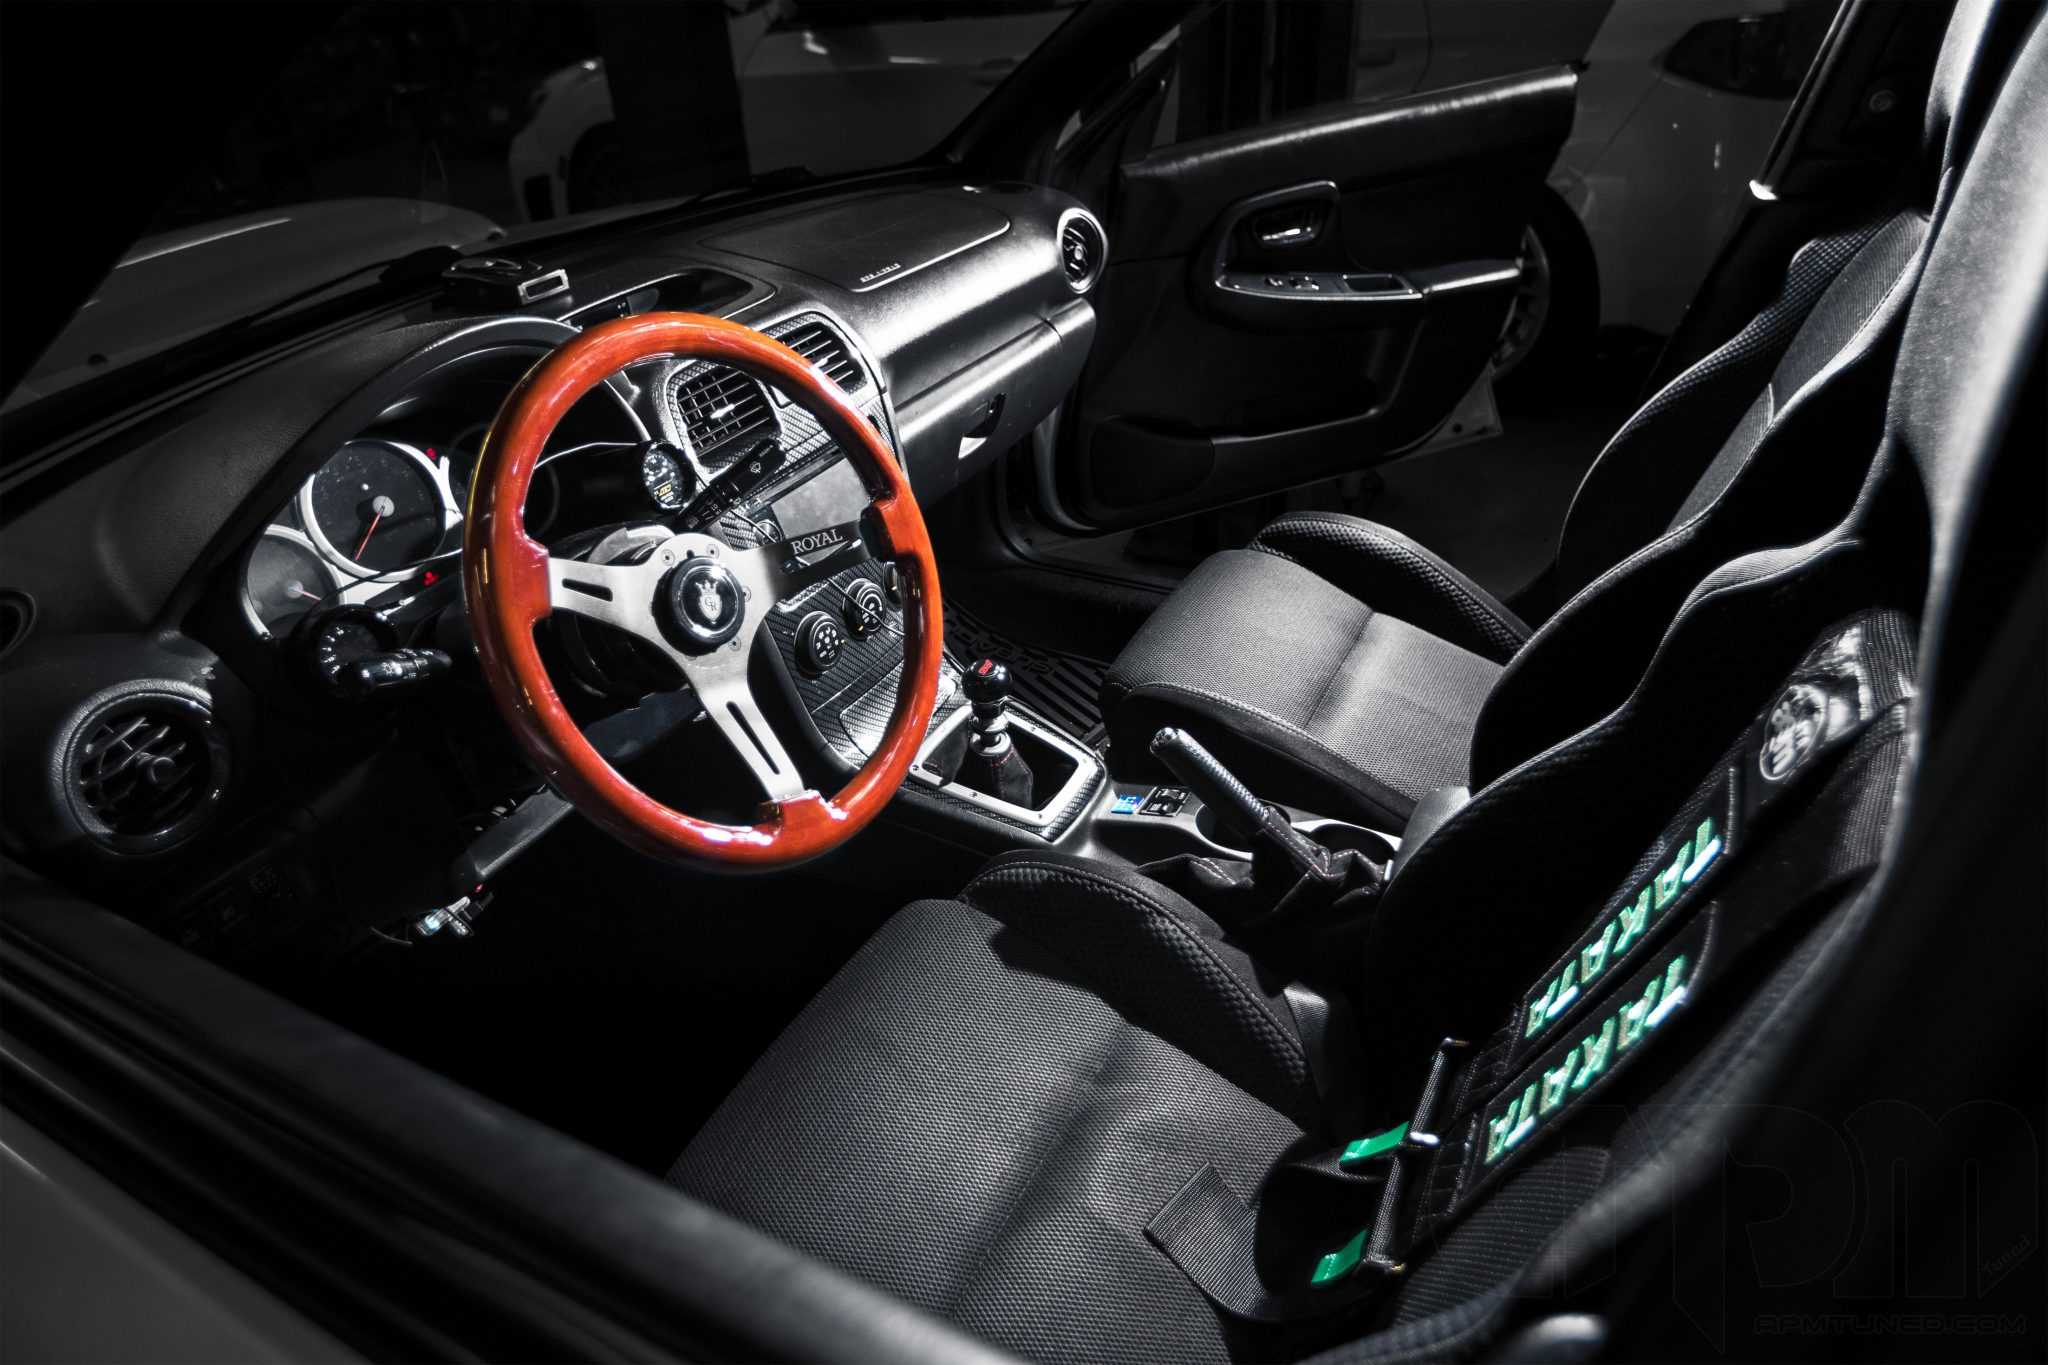 Interior shot of an STi equipped with Takata racing harness, Royal Steering Wheel, Boost and Oil Gauge